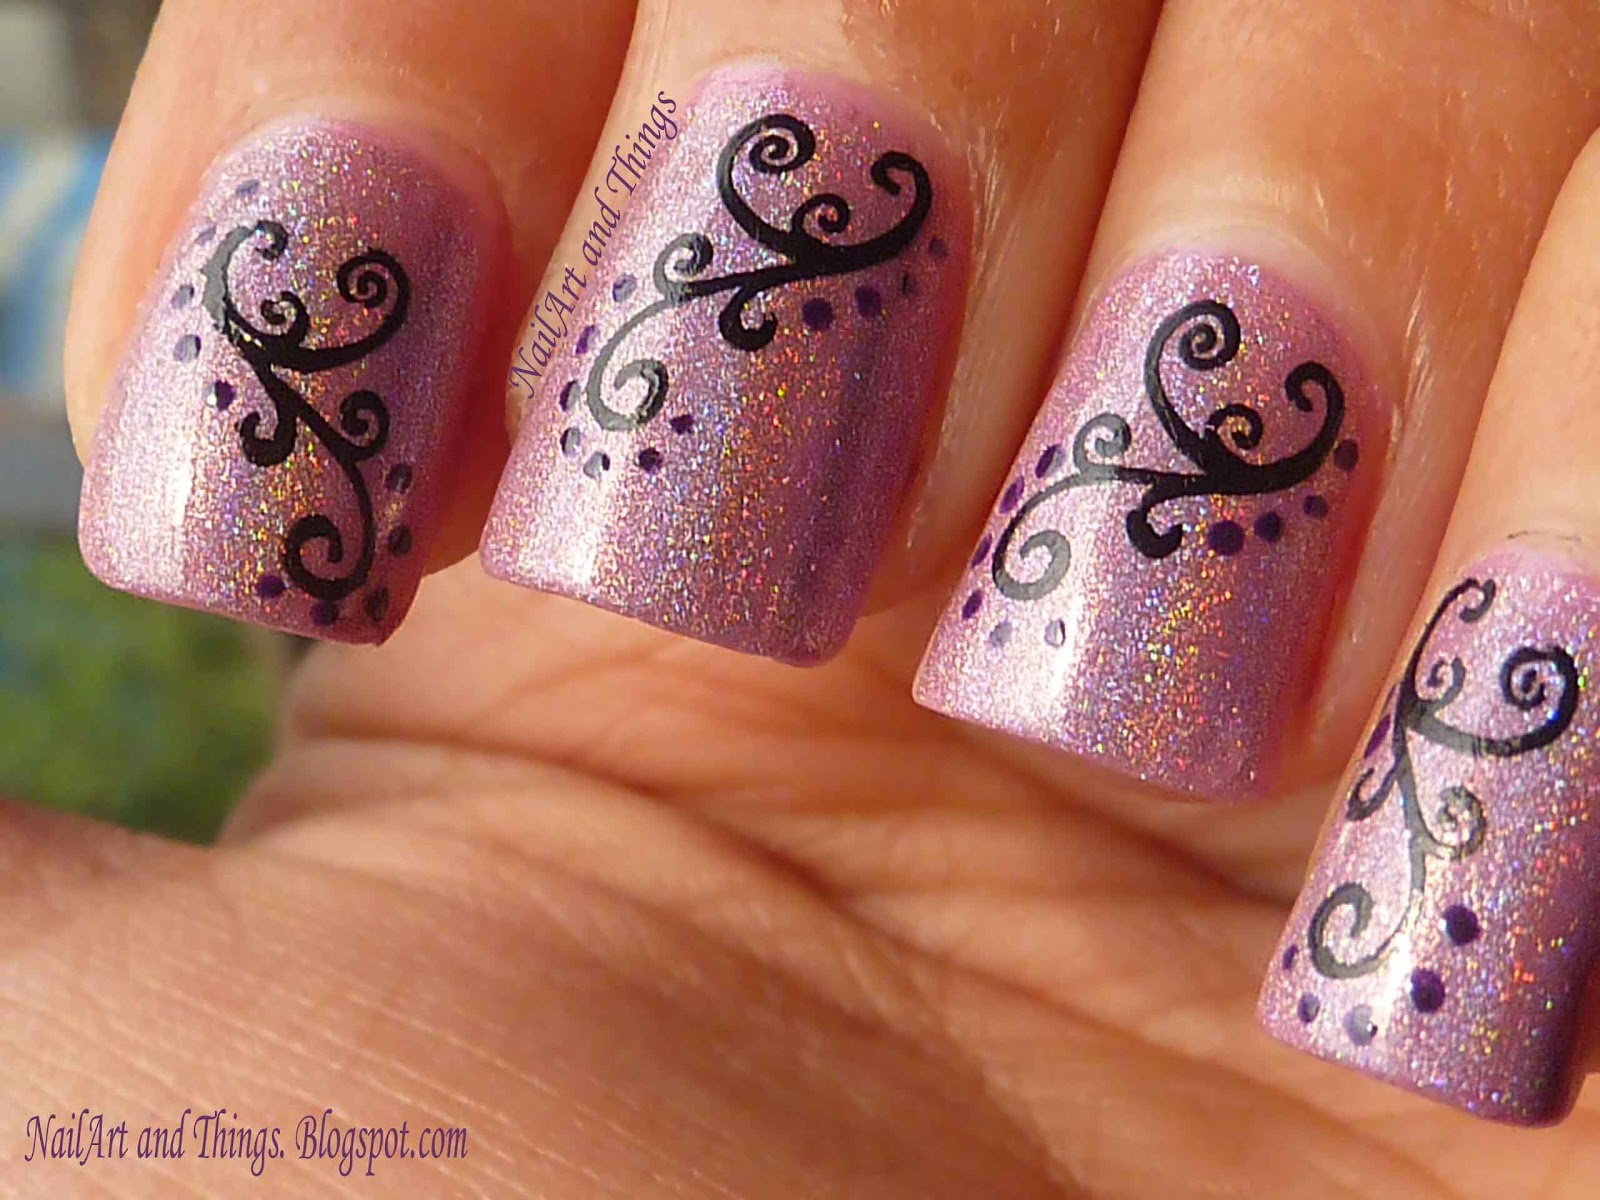 NailArt and Things: Holo Hestia+ Curvy Indian Nail Art